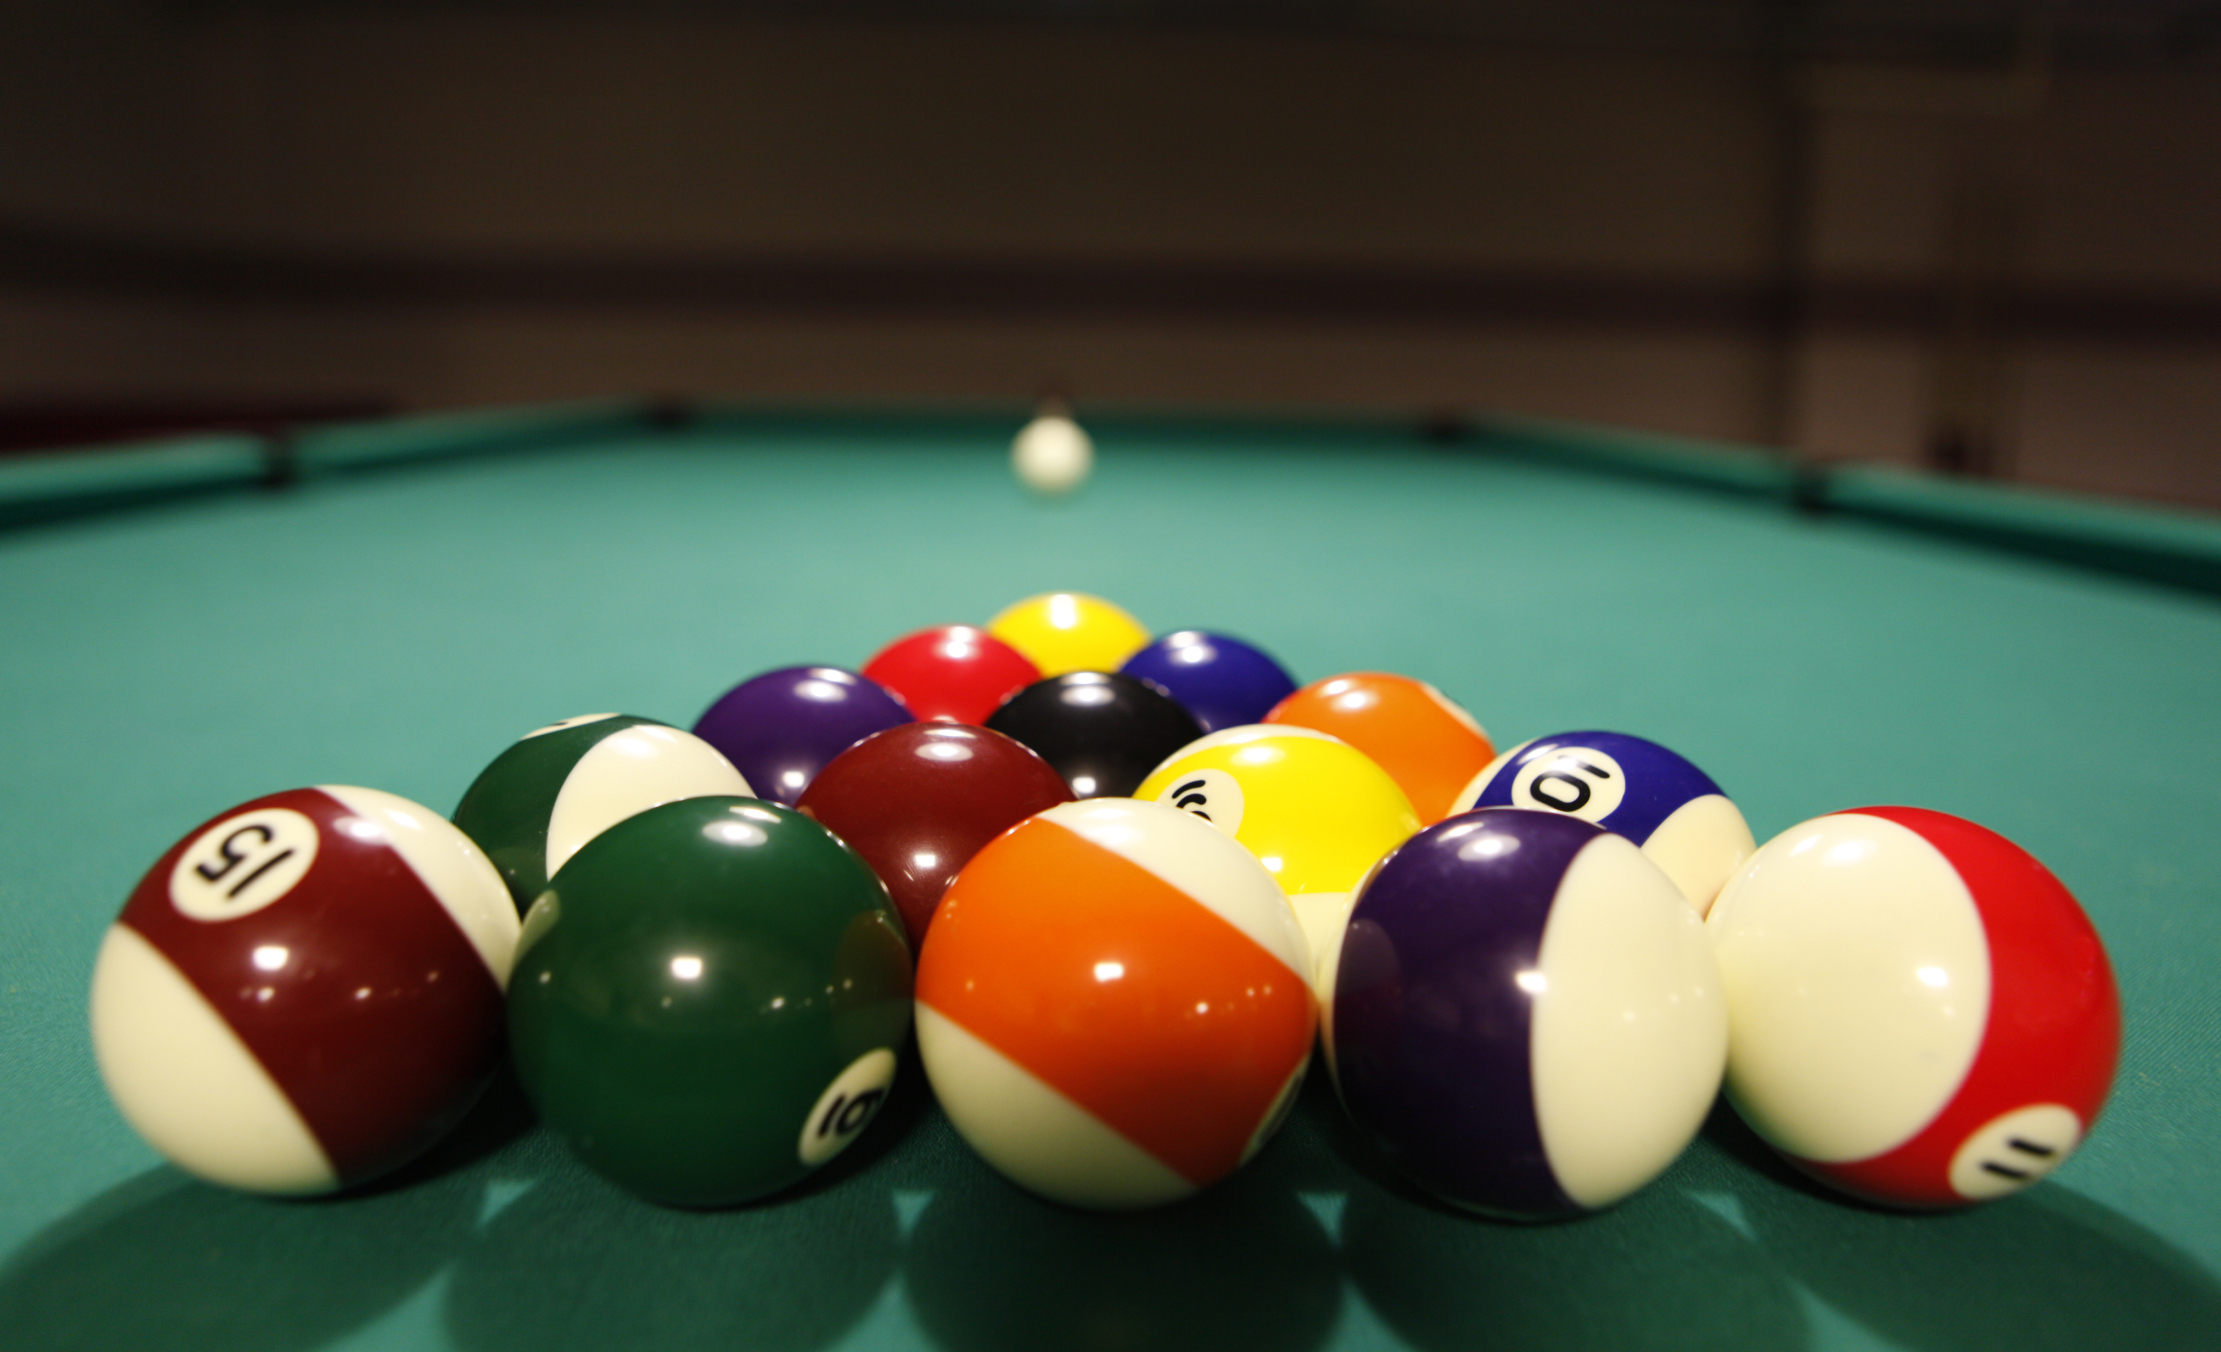 Pool Table Setup >> What Is The Proper Way To Rack Pool Balls